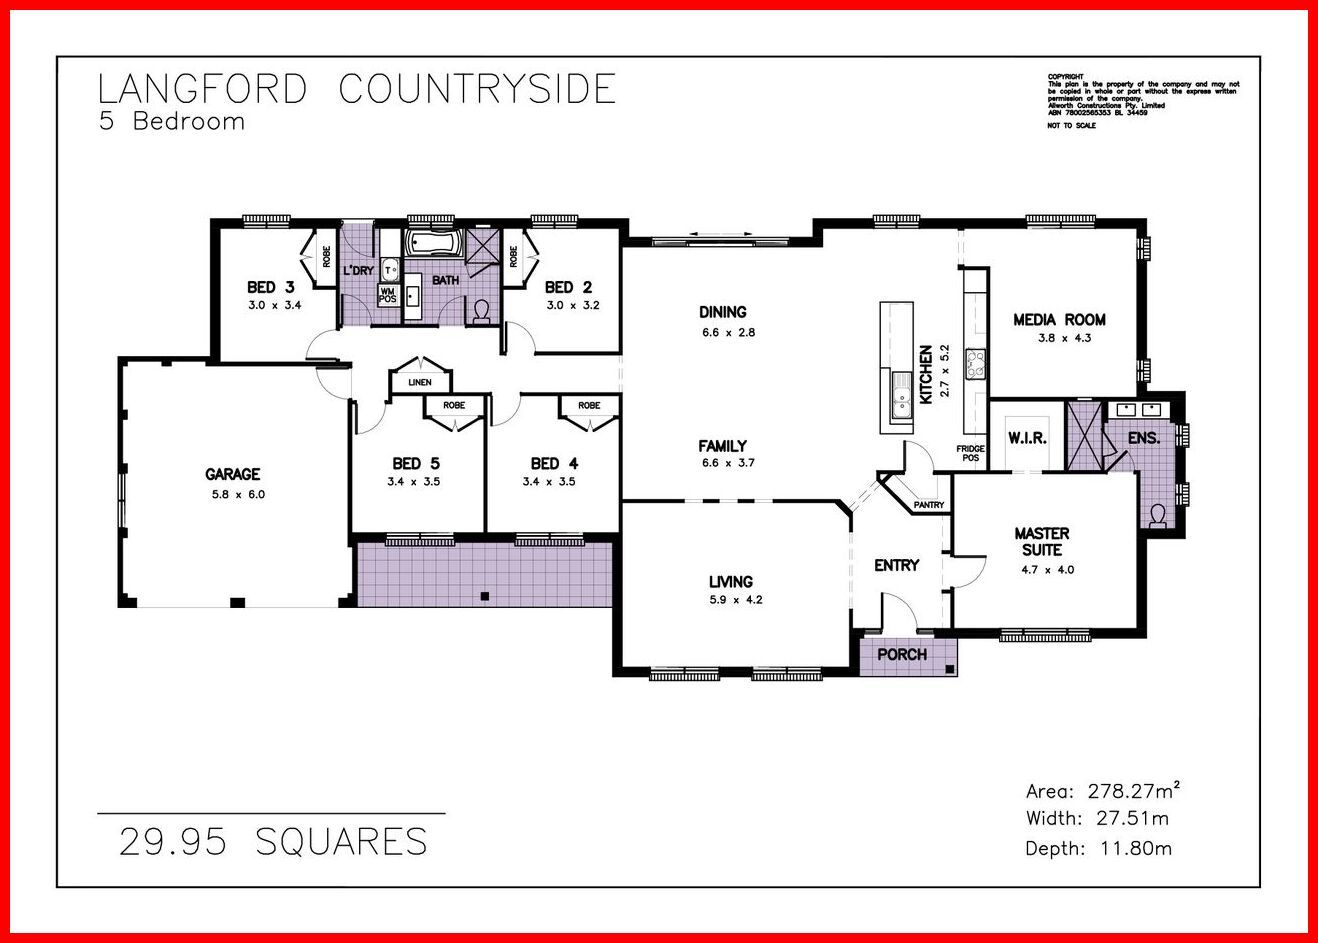 52 Reference Of Floor Plans 5 Bedroom House In 2020 House Plans Uk 5 Bedroom House Plans Square House Plans